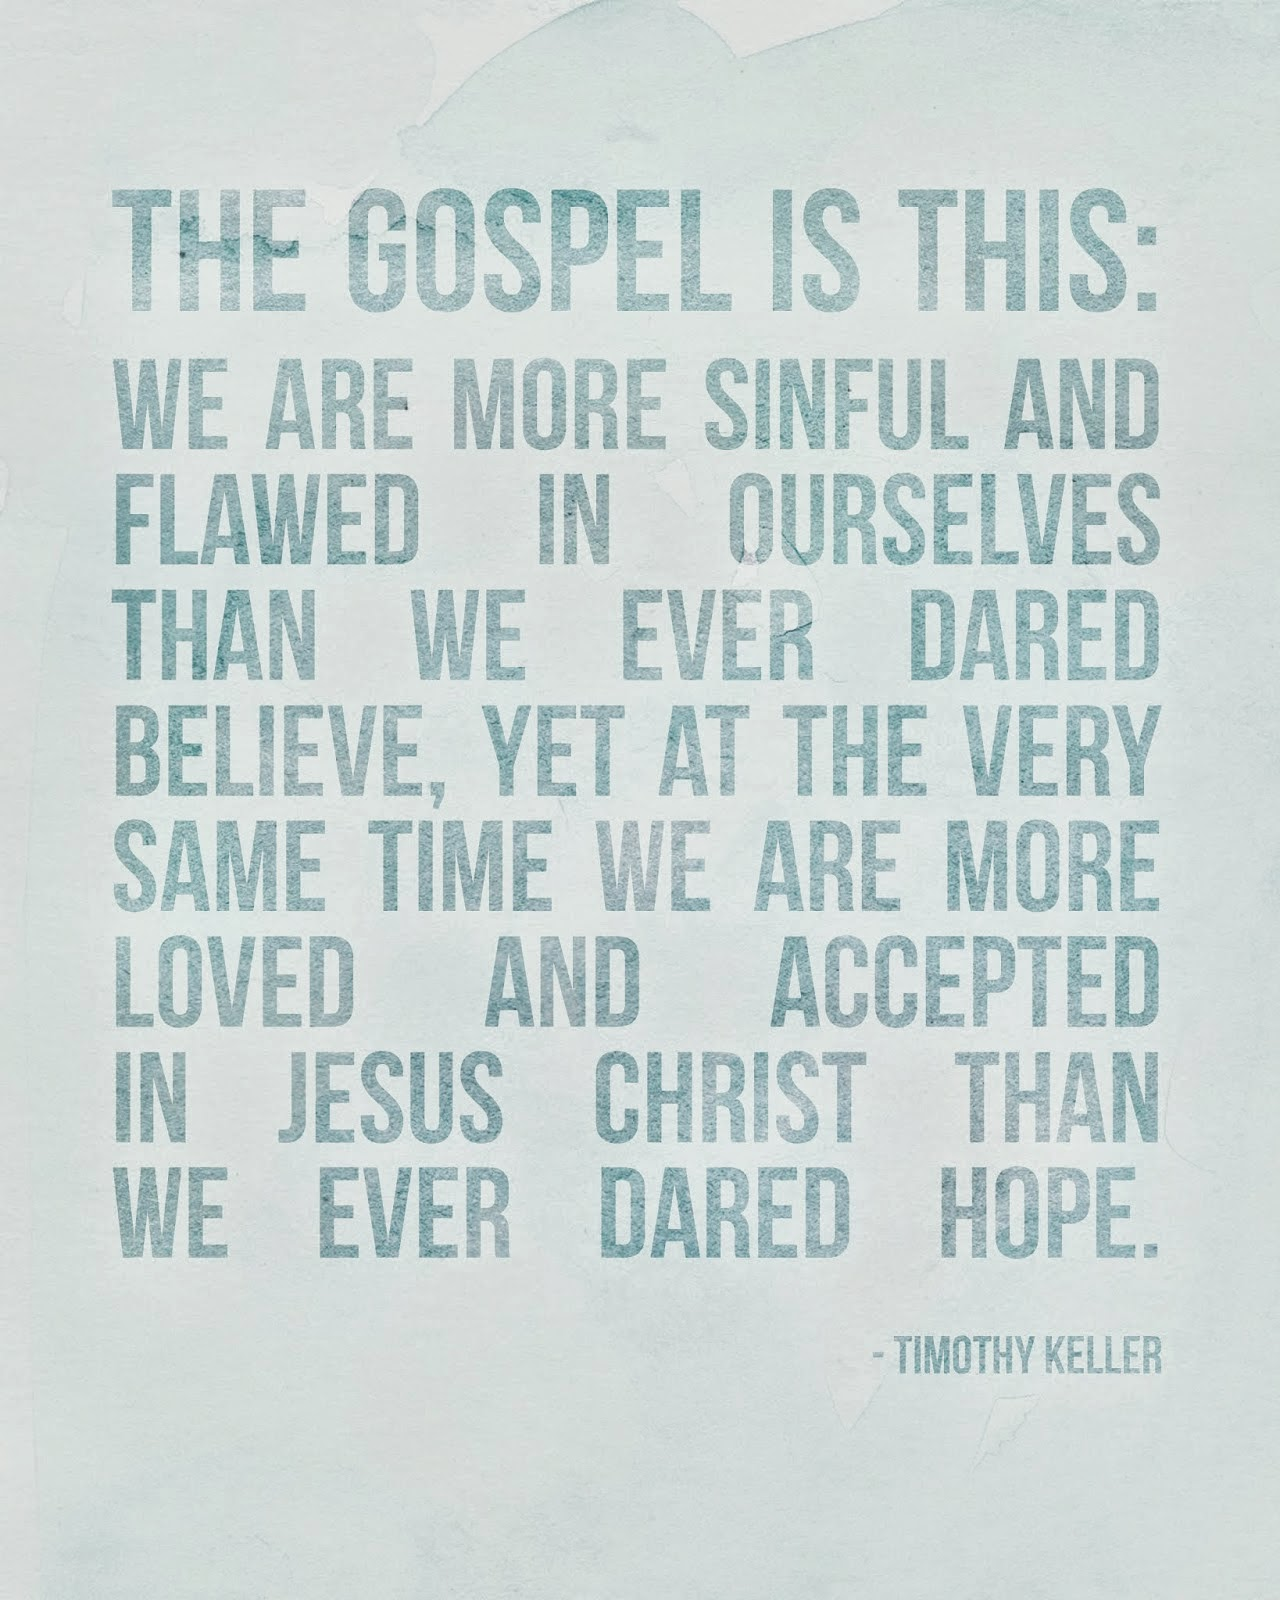 The Gospel is...